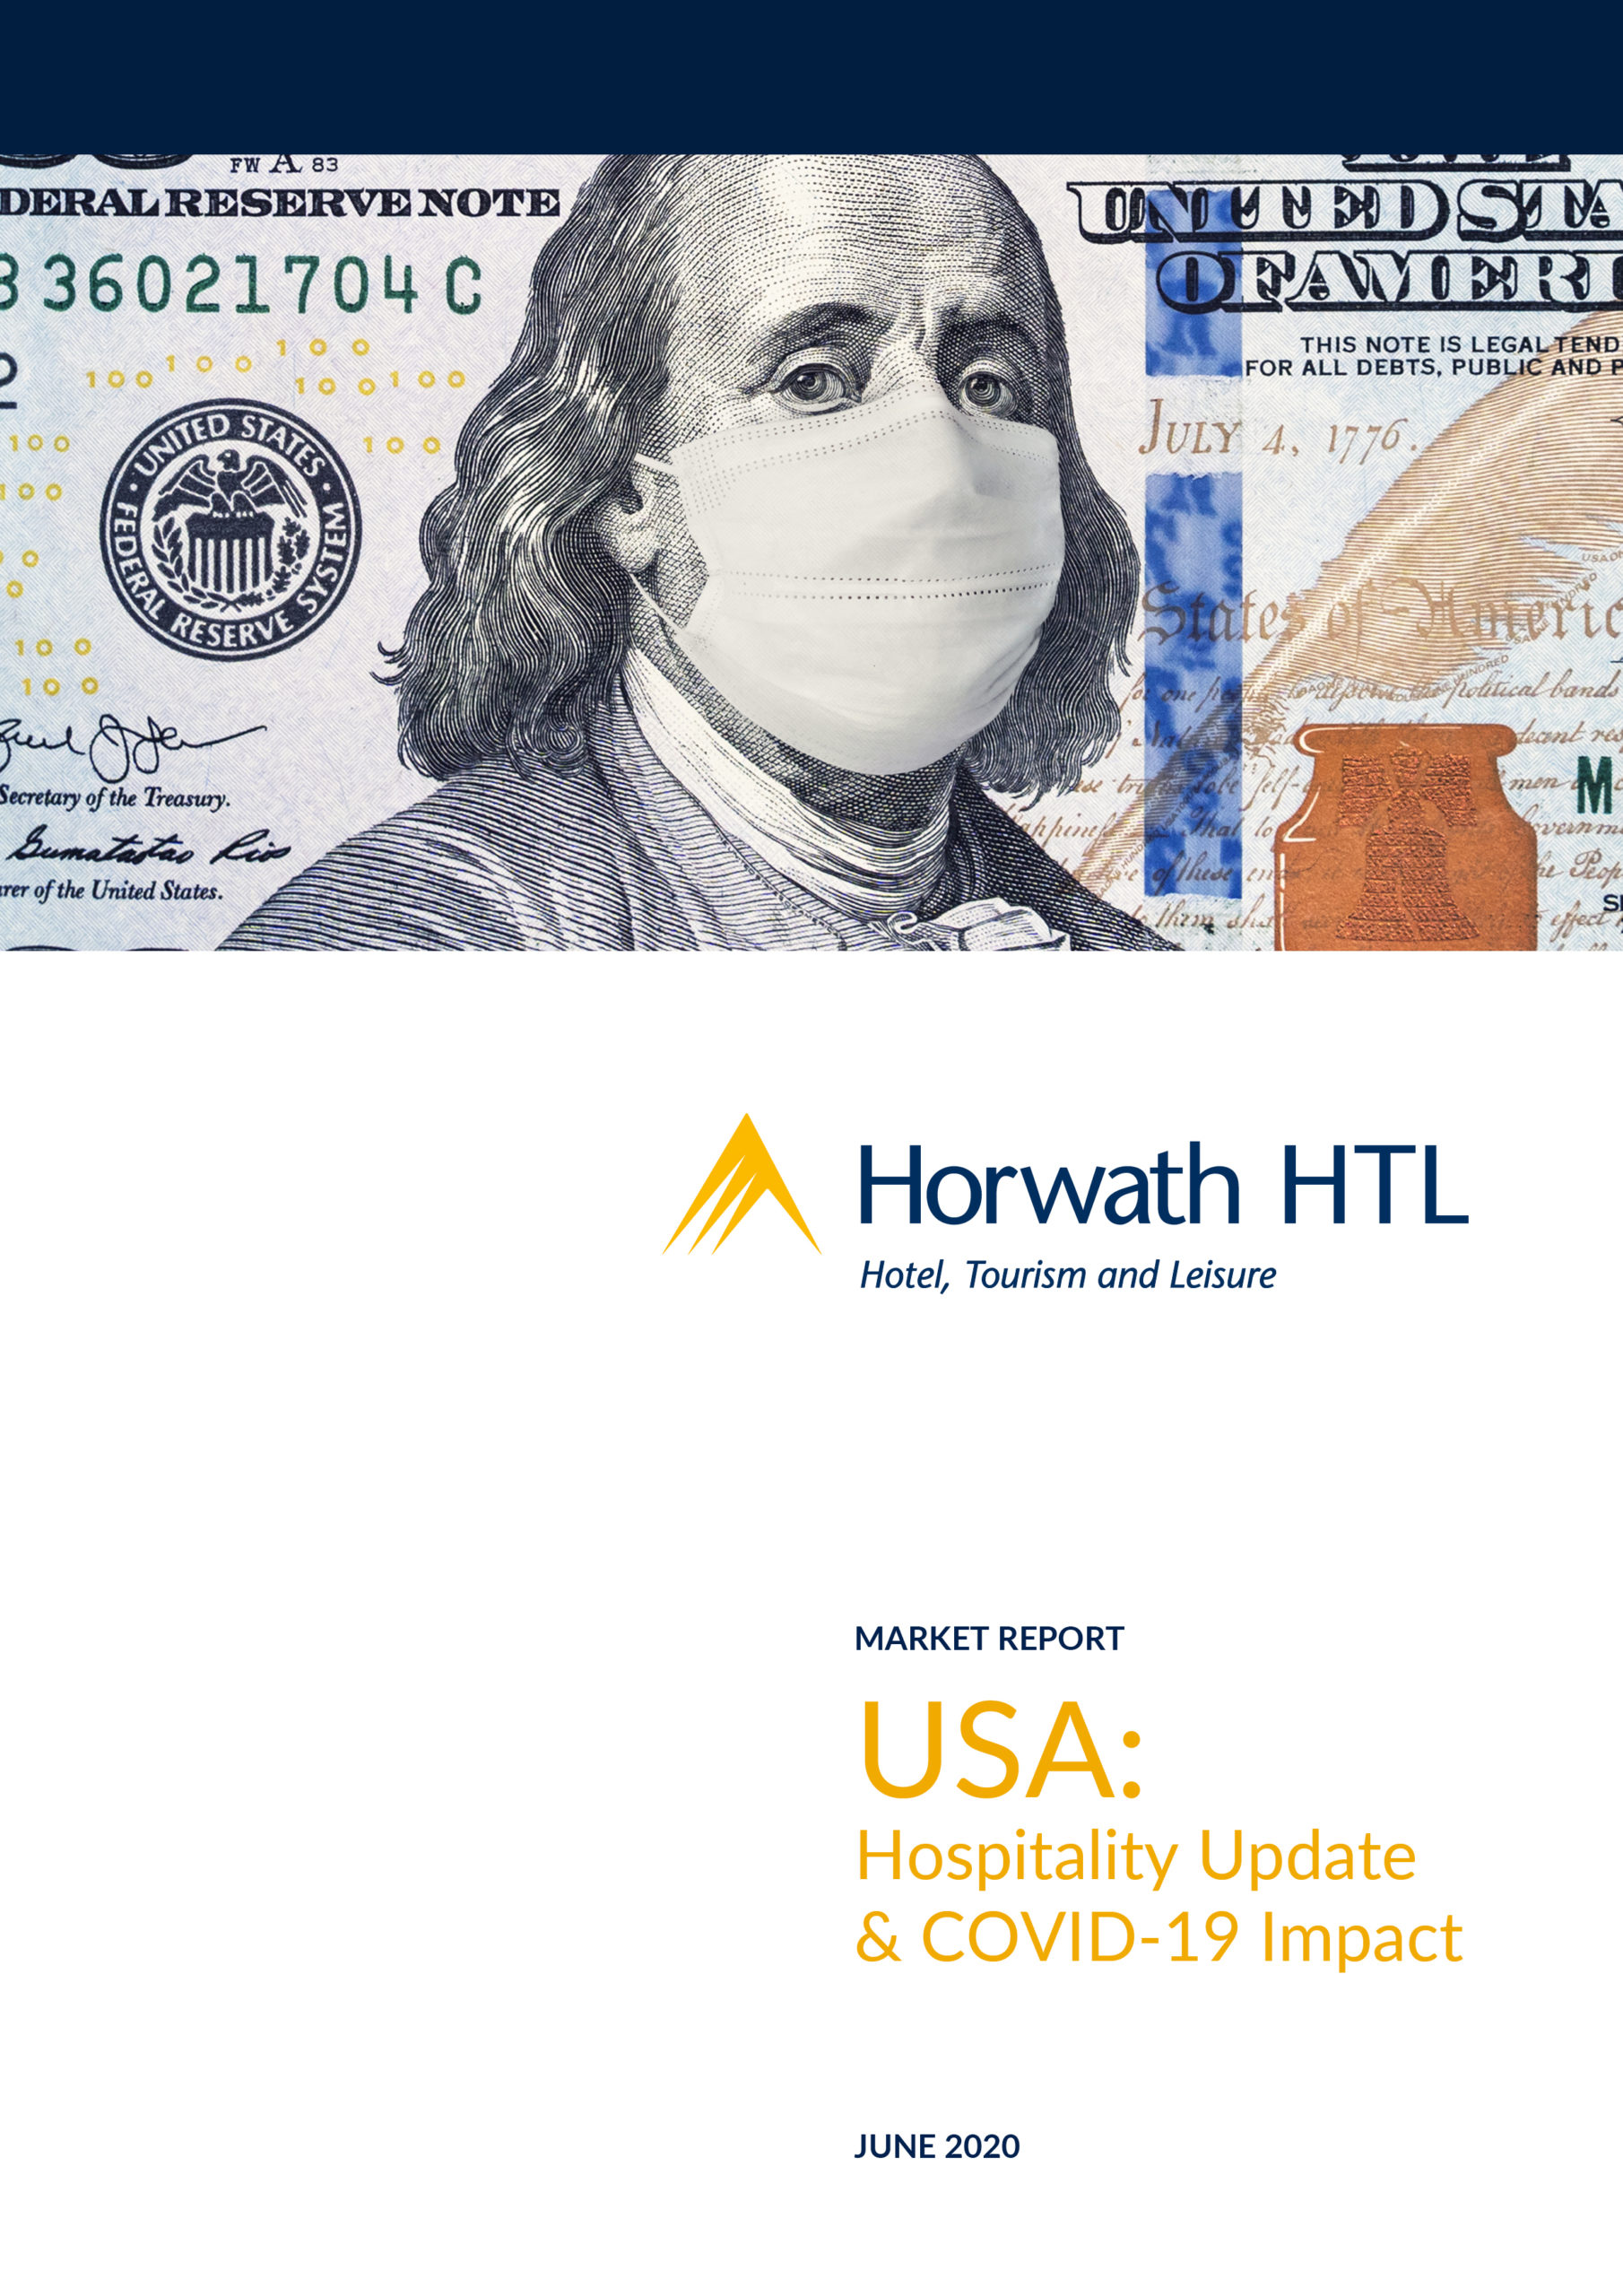 UPDATED: USA Hospitality & COVID-19 Impact